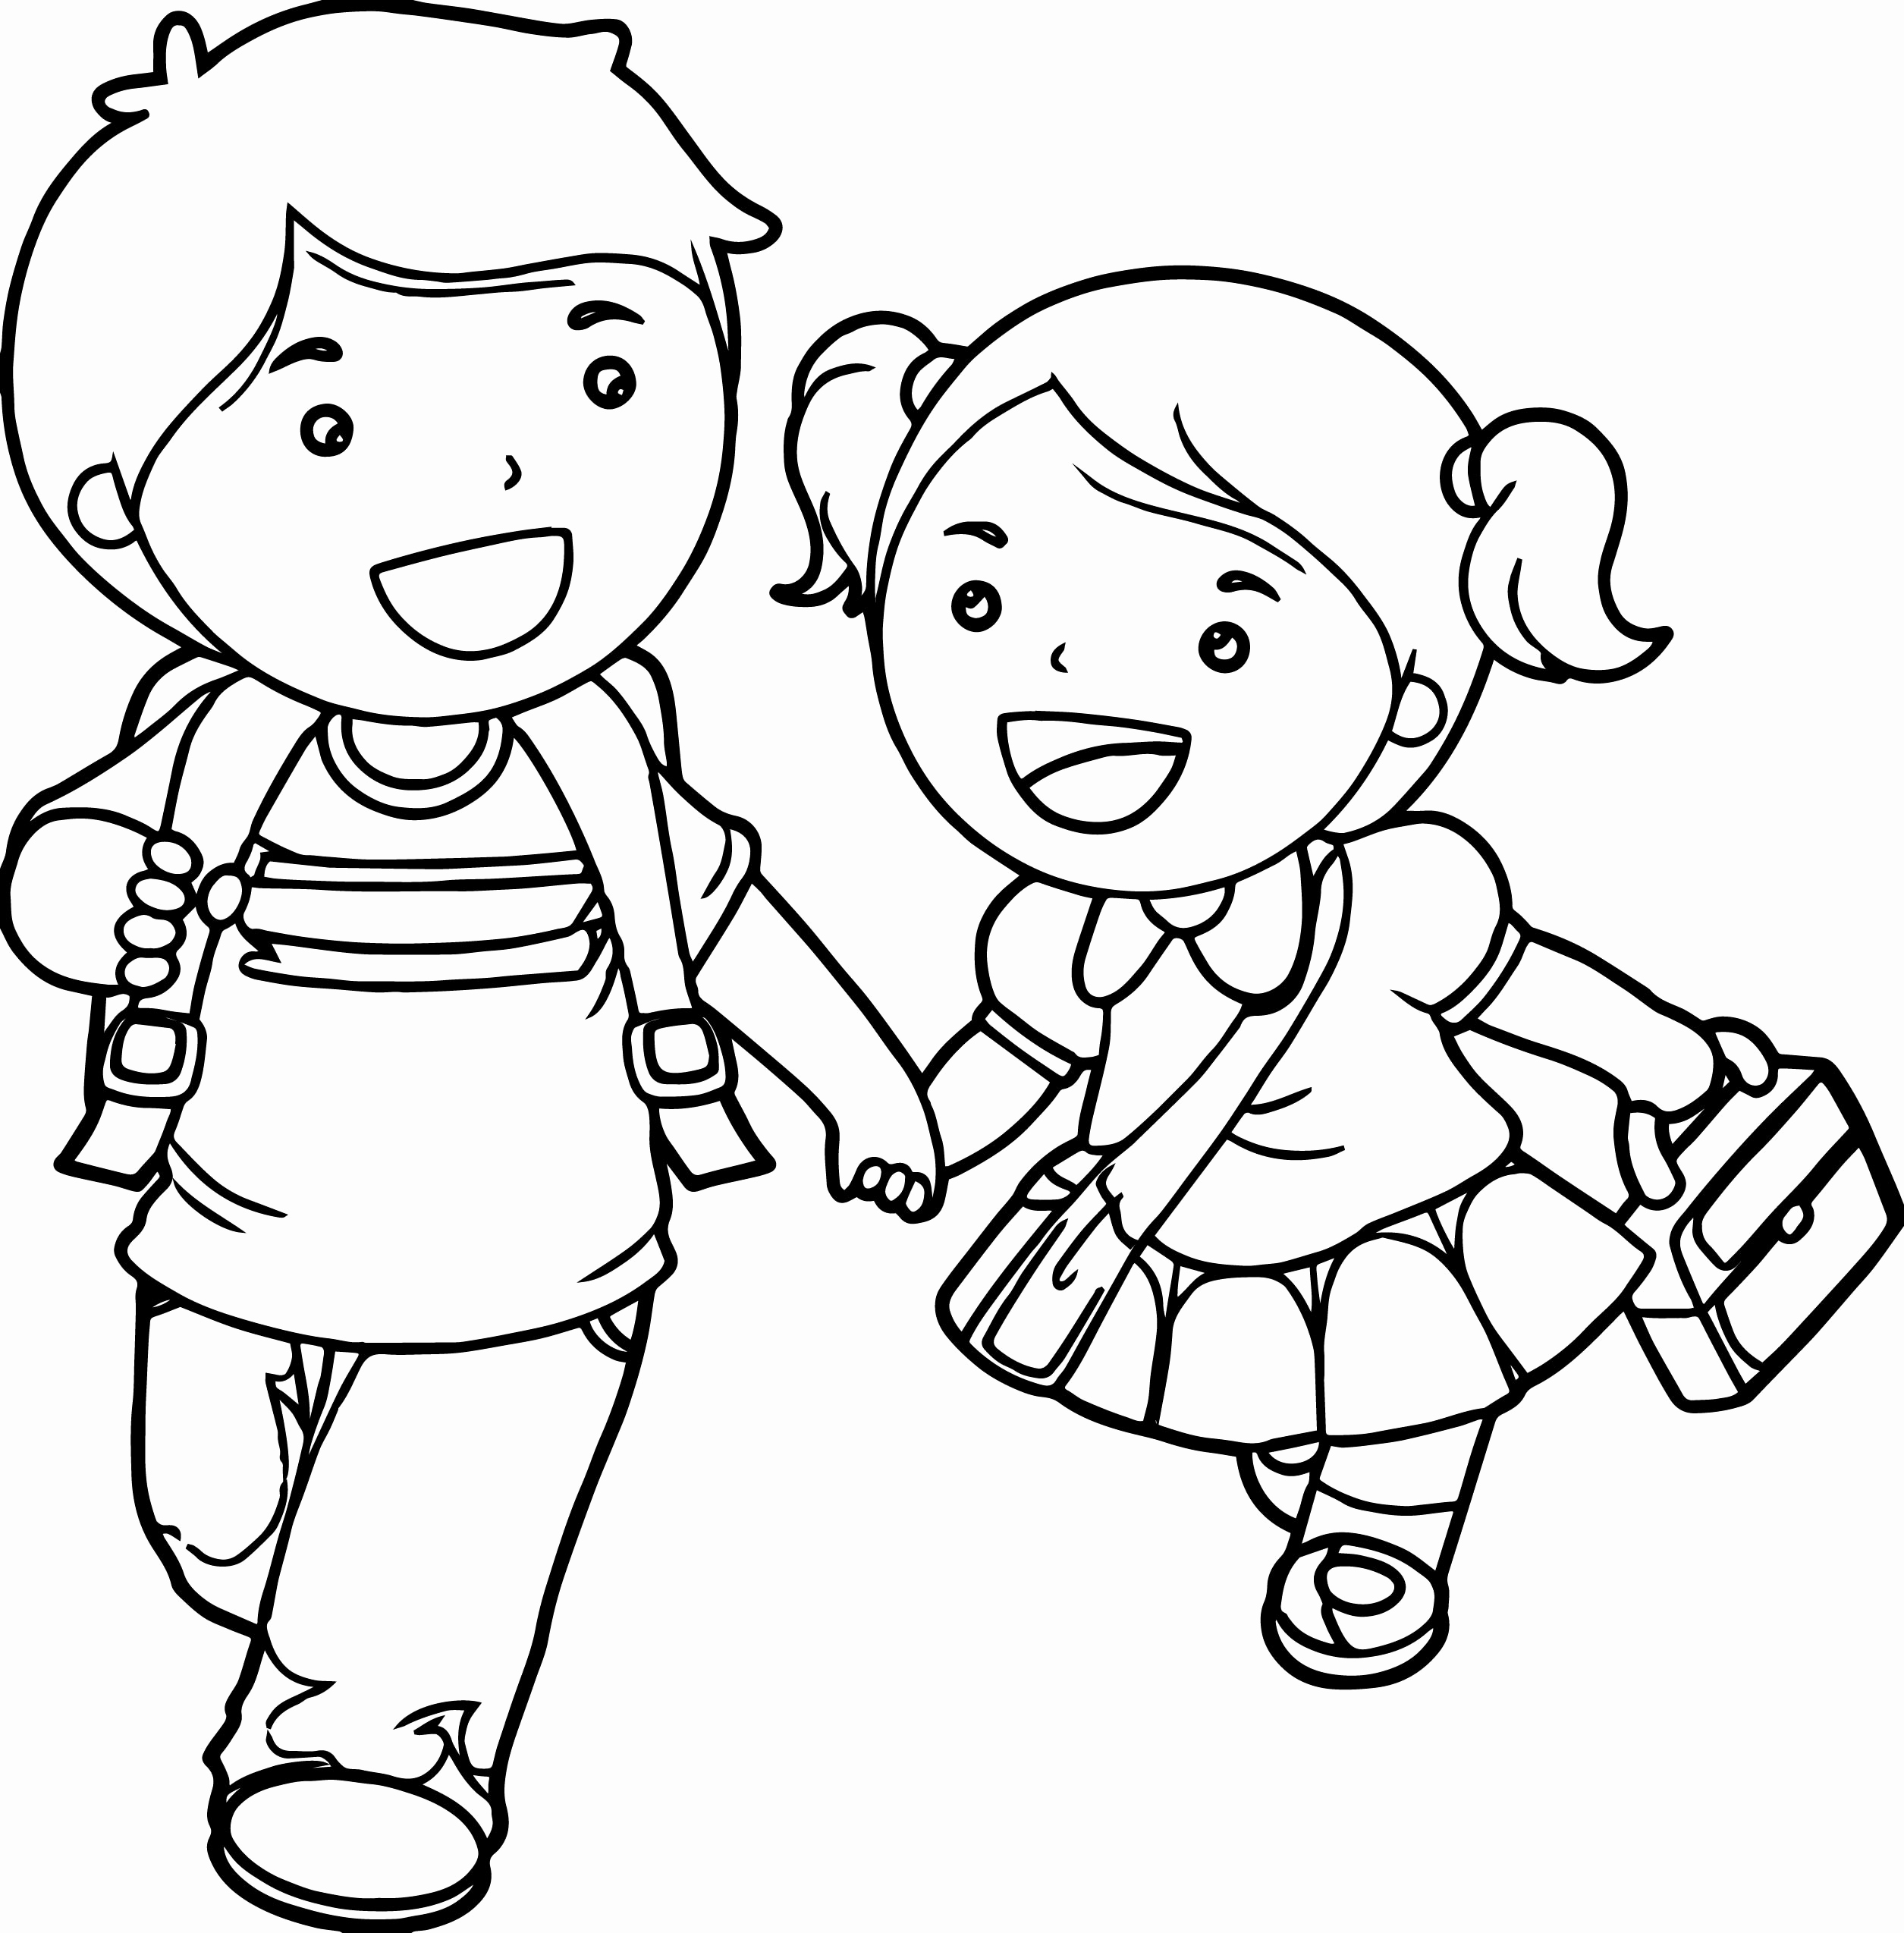 School Girl Coloring Pages At Getcolorings